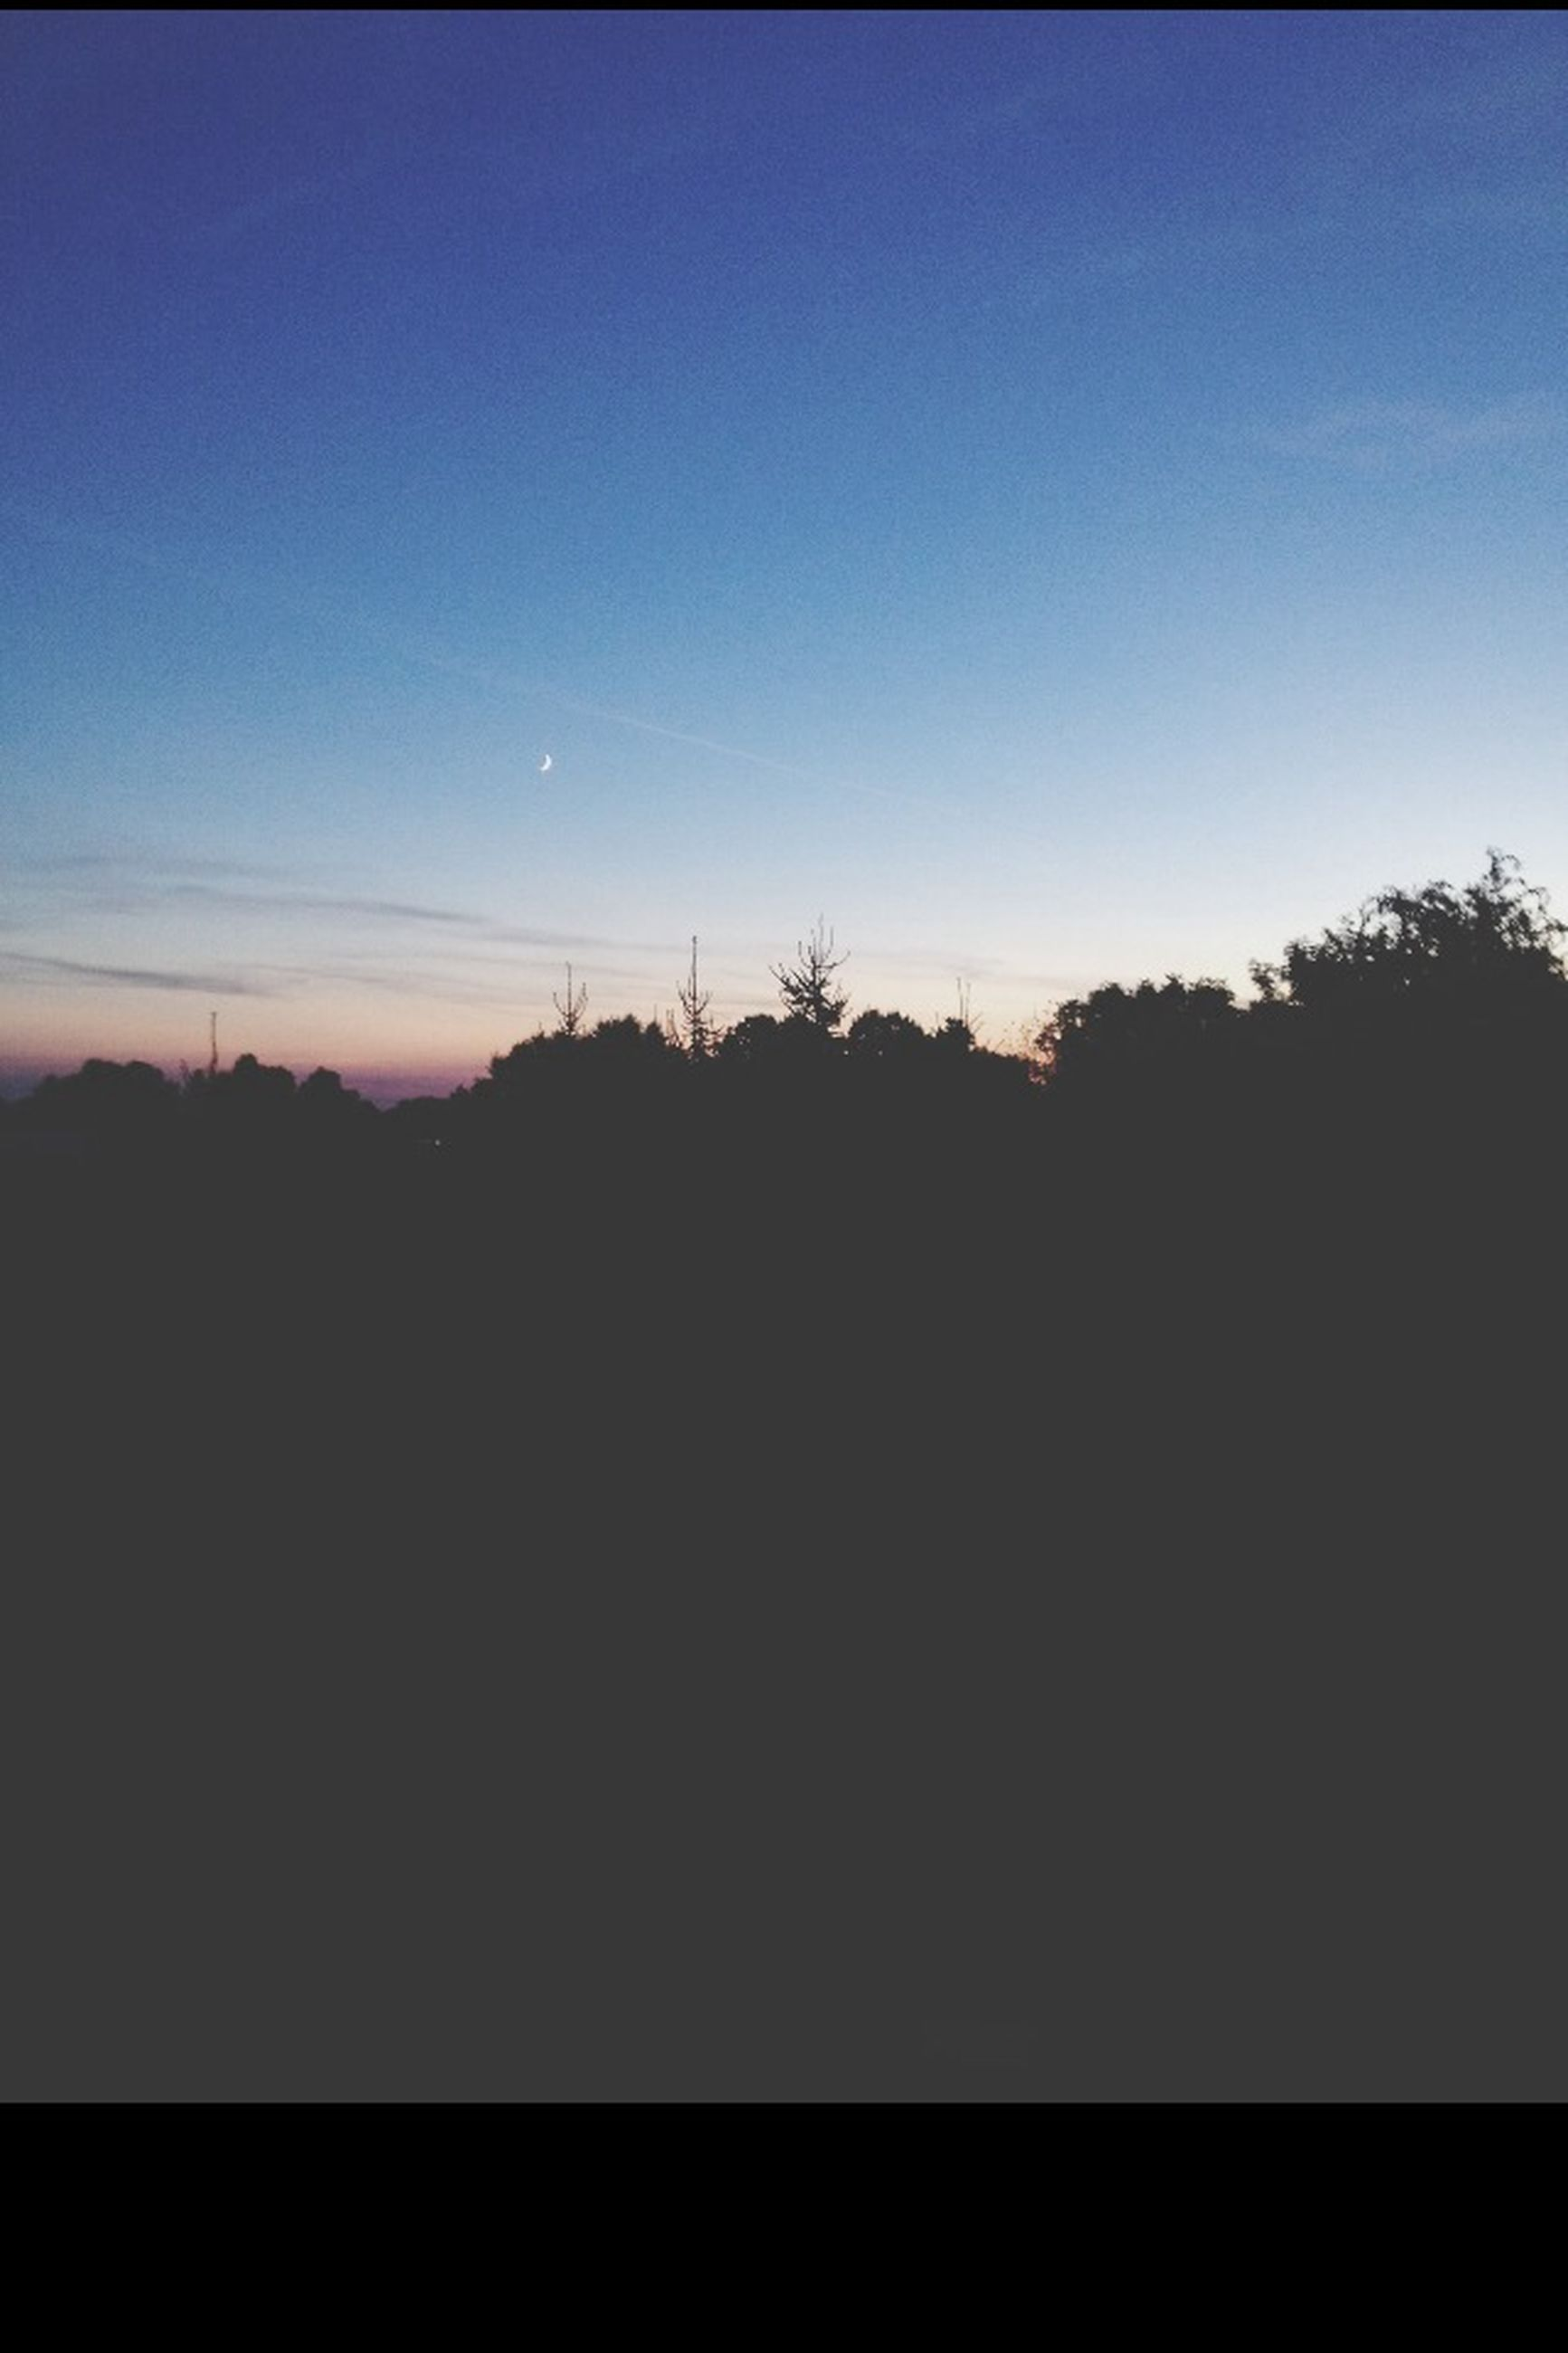 silhouette, sunset, tranquil scene, copy space, tranquility, scenics, beauty in nature, tree, clear sky, sky, nature, dusk, idyllic, blue, dark, landscape, outdoors, no people, outline, non urban scene